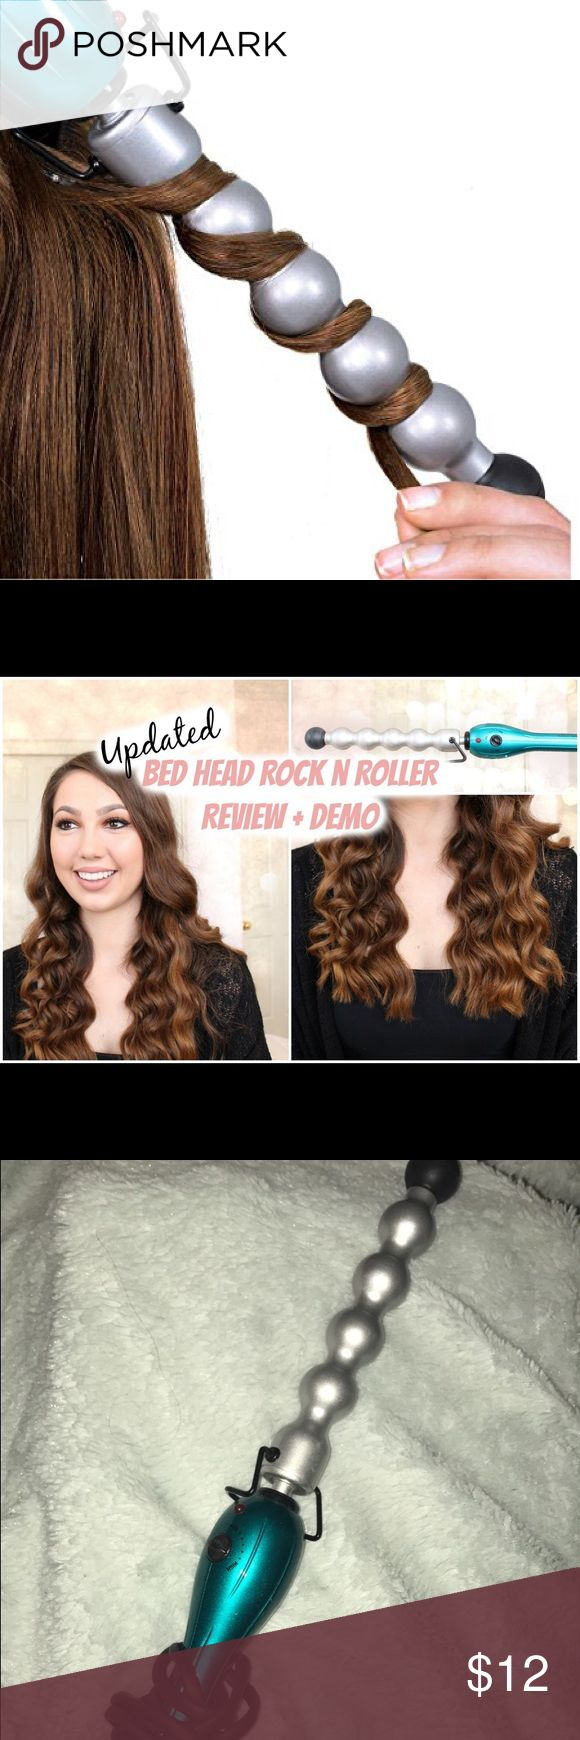 blue bed head rock n roller bubble curling wand bought for almost $30 when it came out, only used once. has a super long cord and reaches far!! bed head Makeup Brushes & Tools